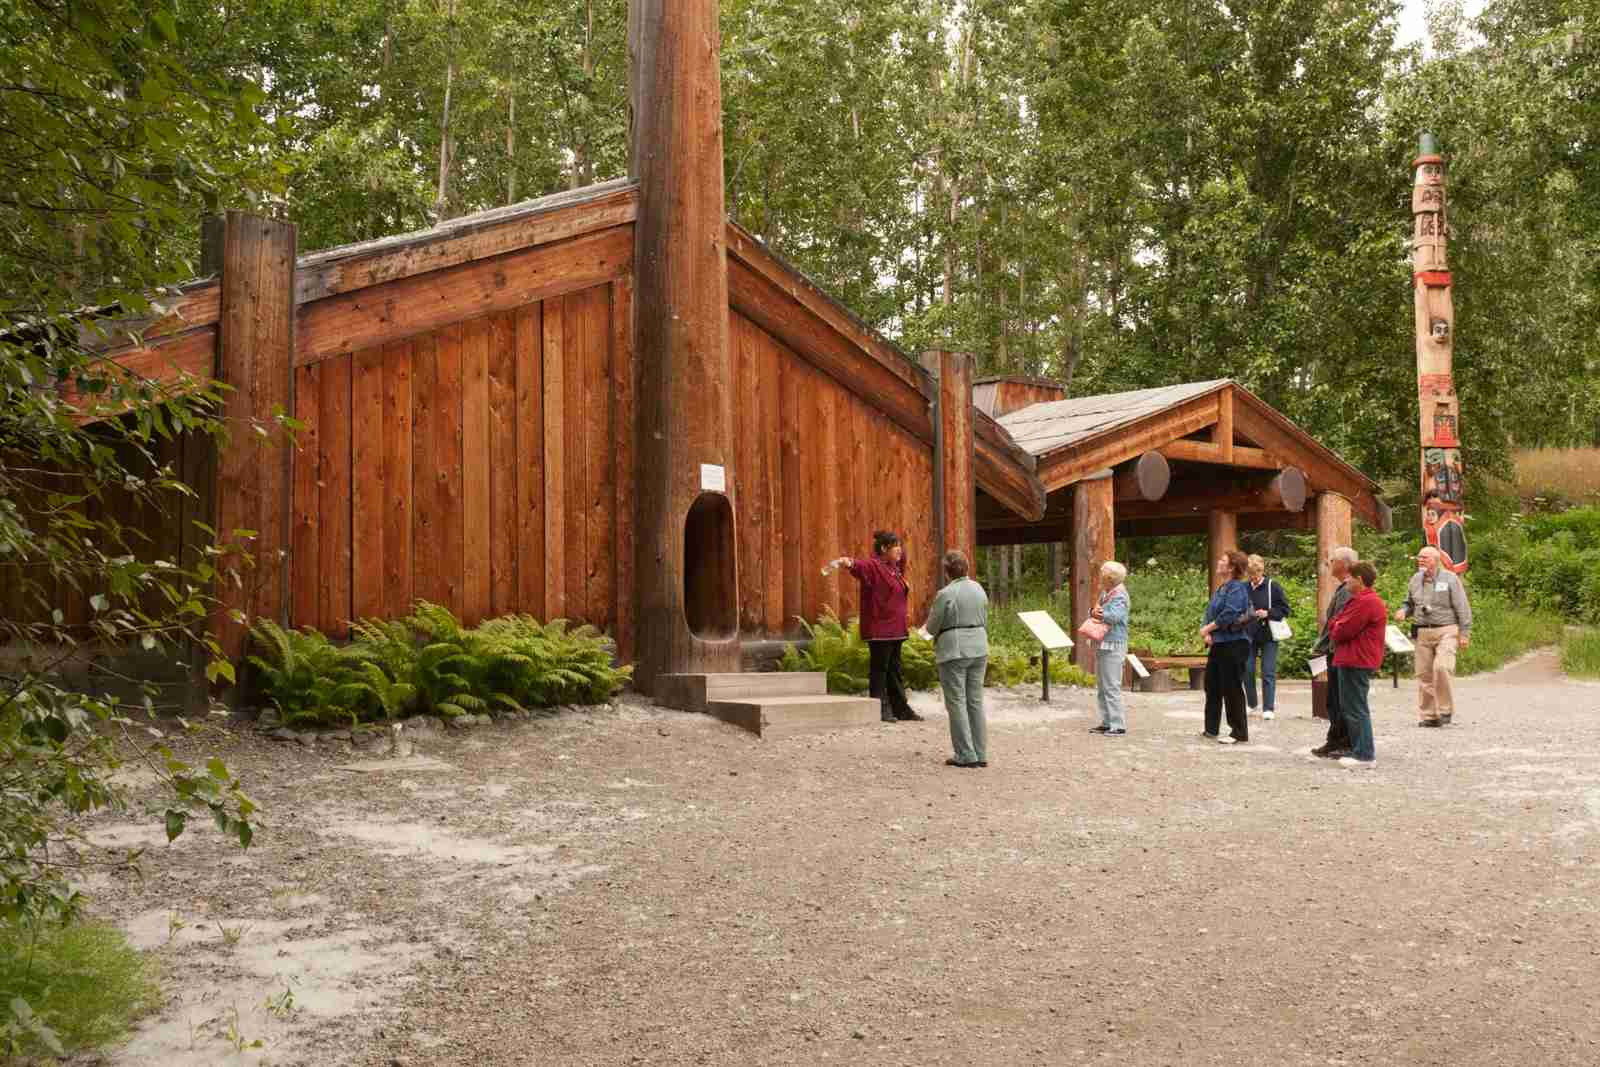 The Alaska Native Heritage Center. (Photo by John Elk/Getty Images)